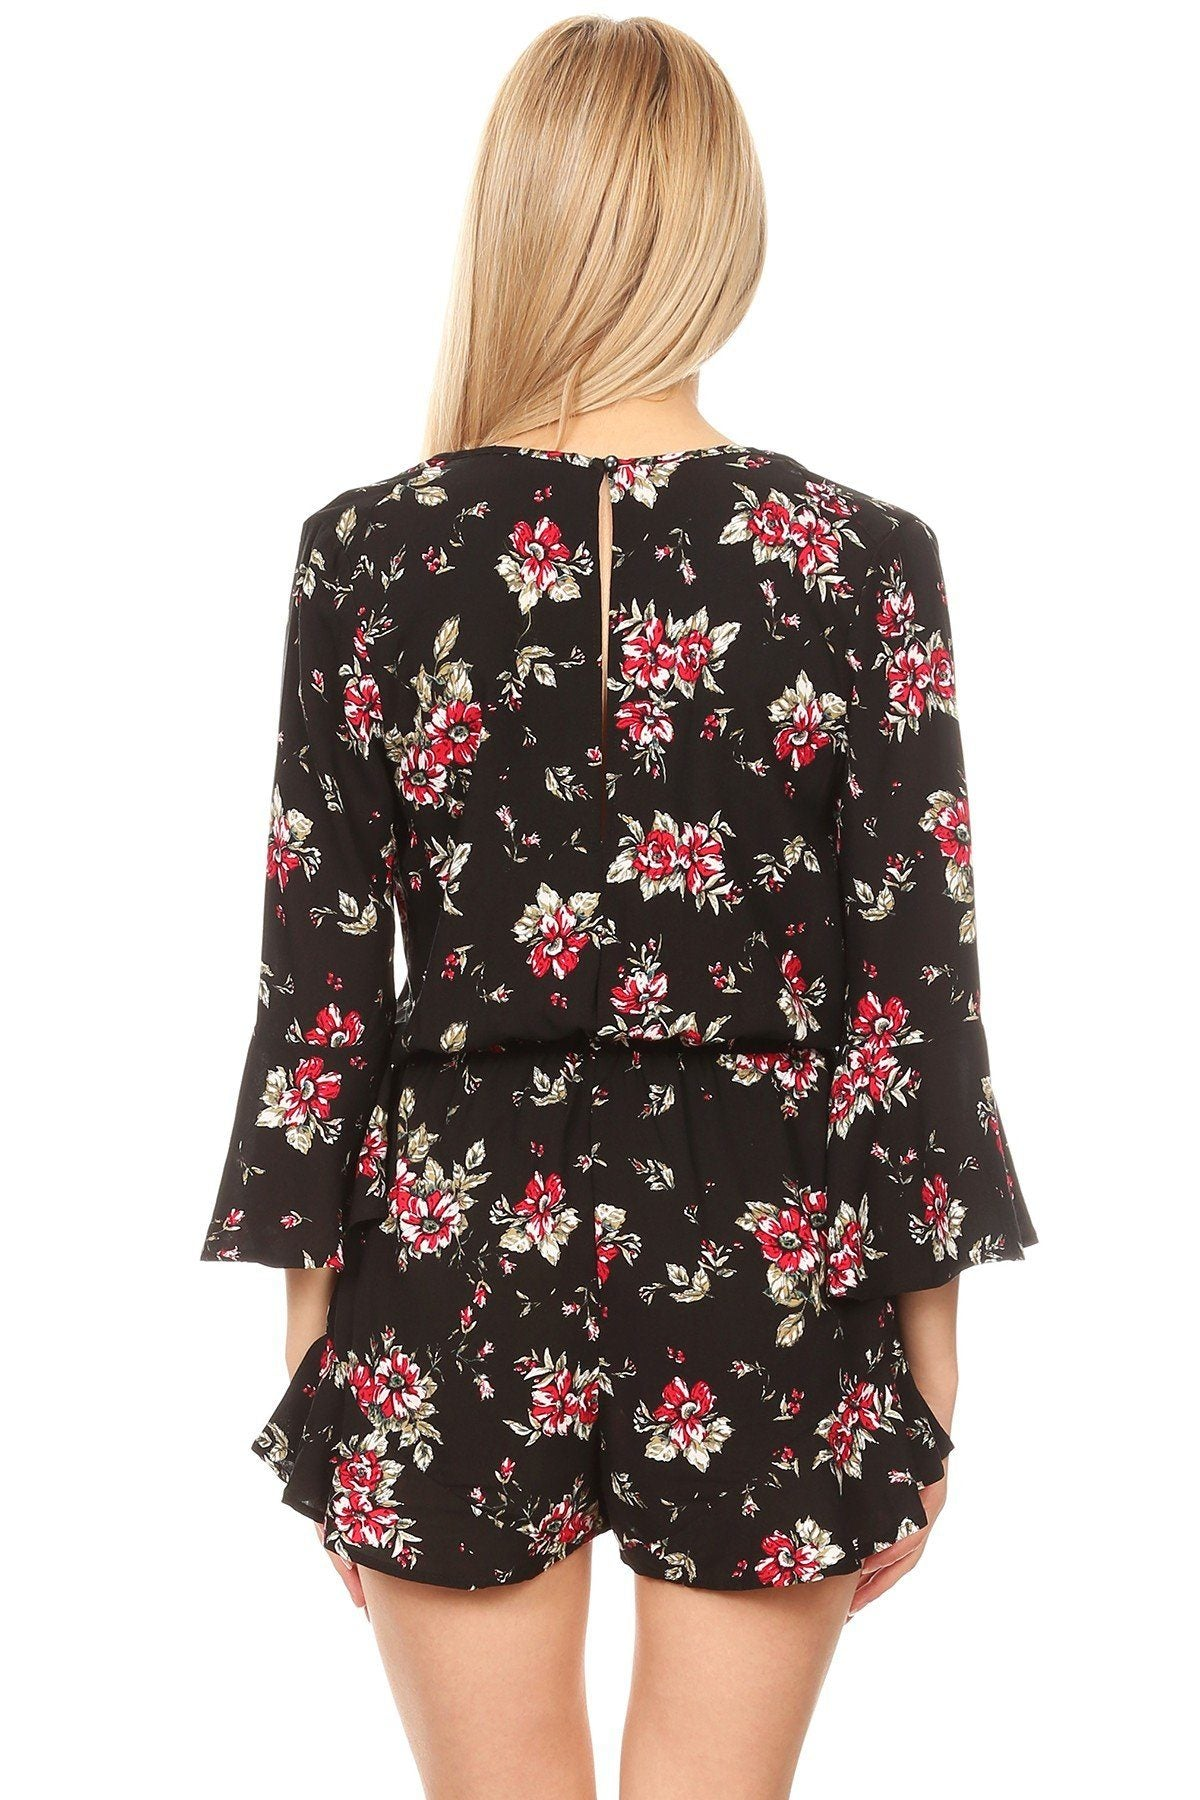 Women/Juniors 3/4 Bell Sleeve Floral Romper Shorts Jumpsuit: S/M/L romper MomMe and More